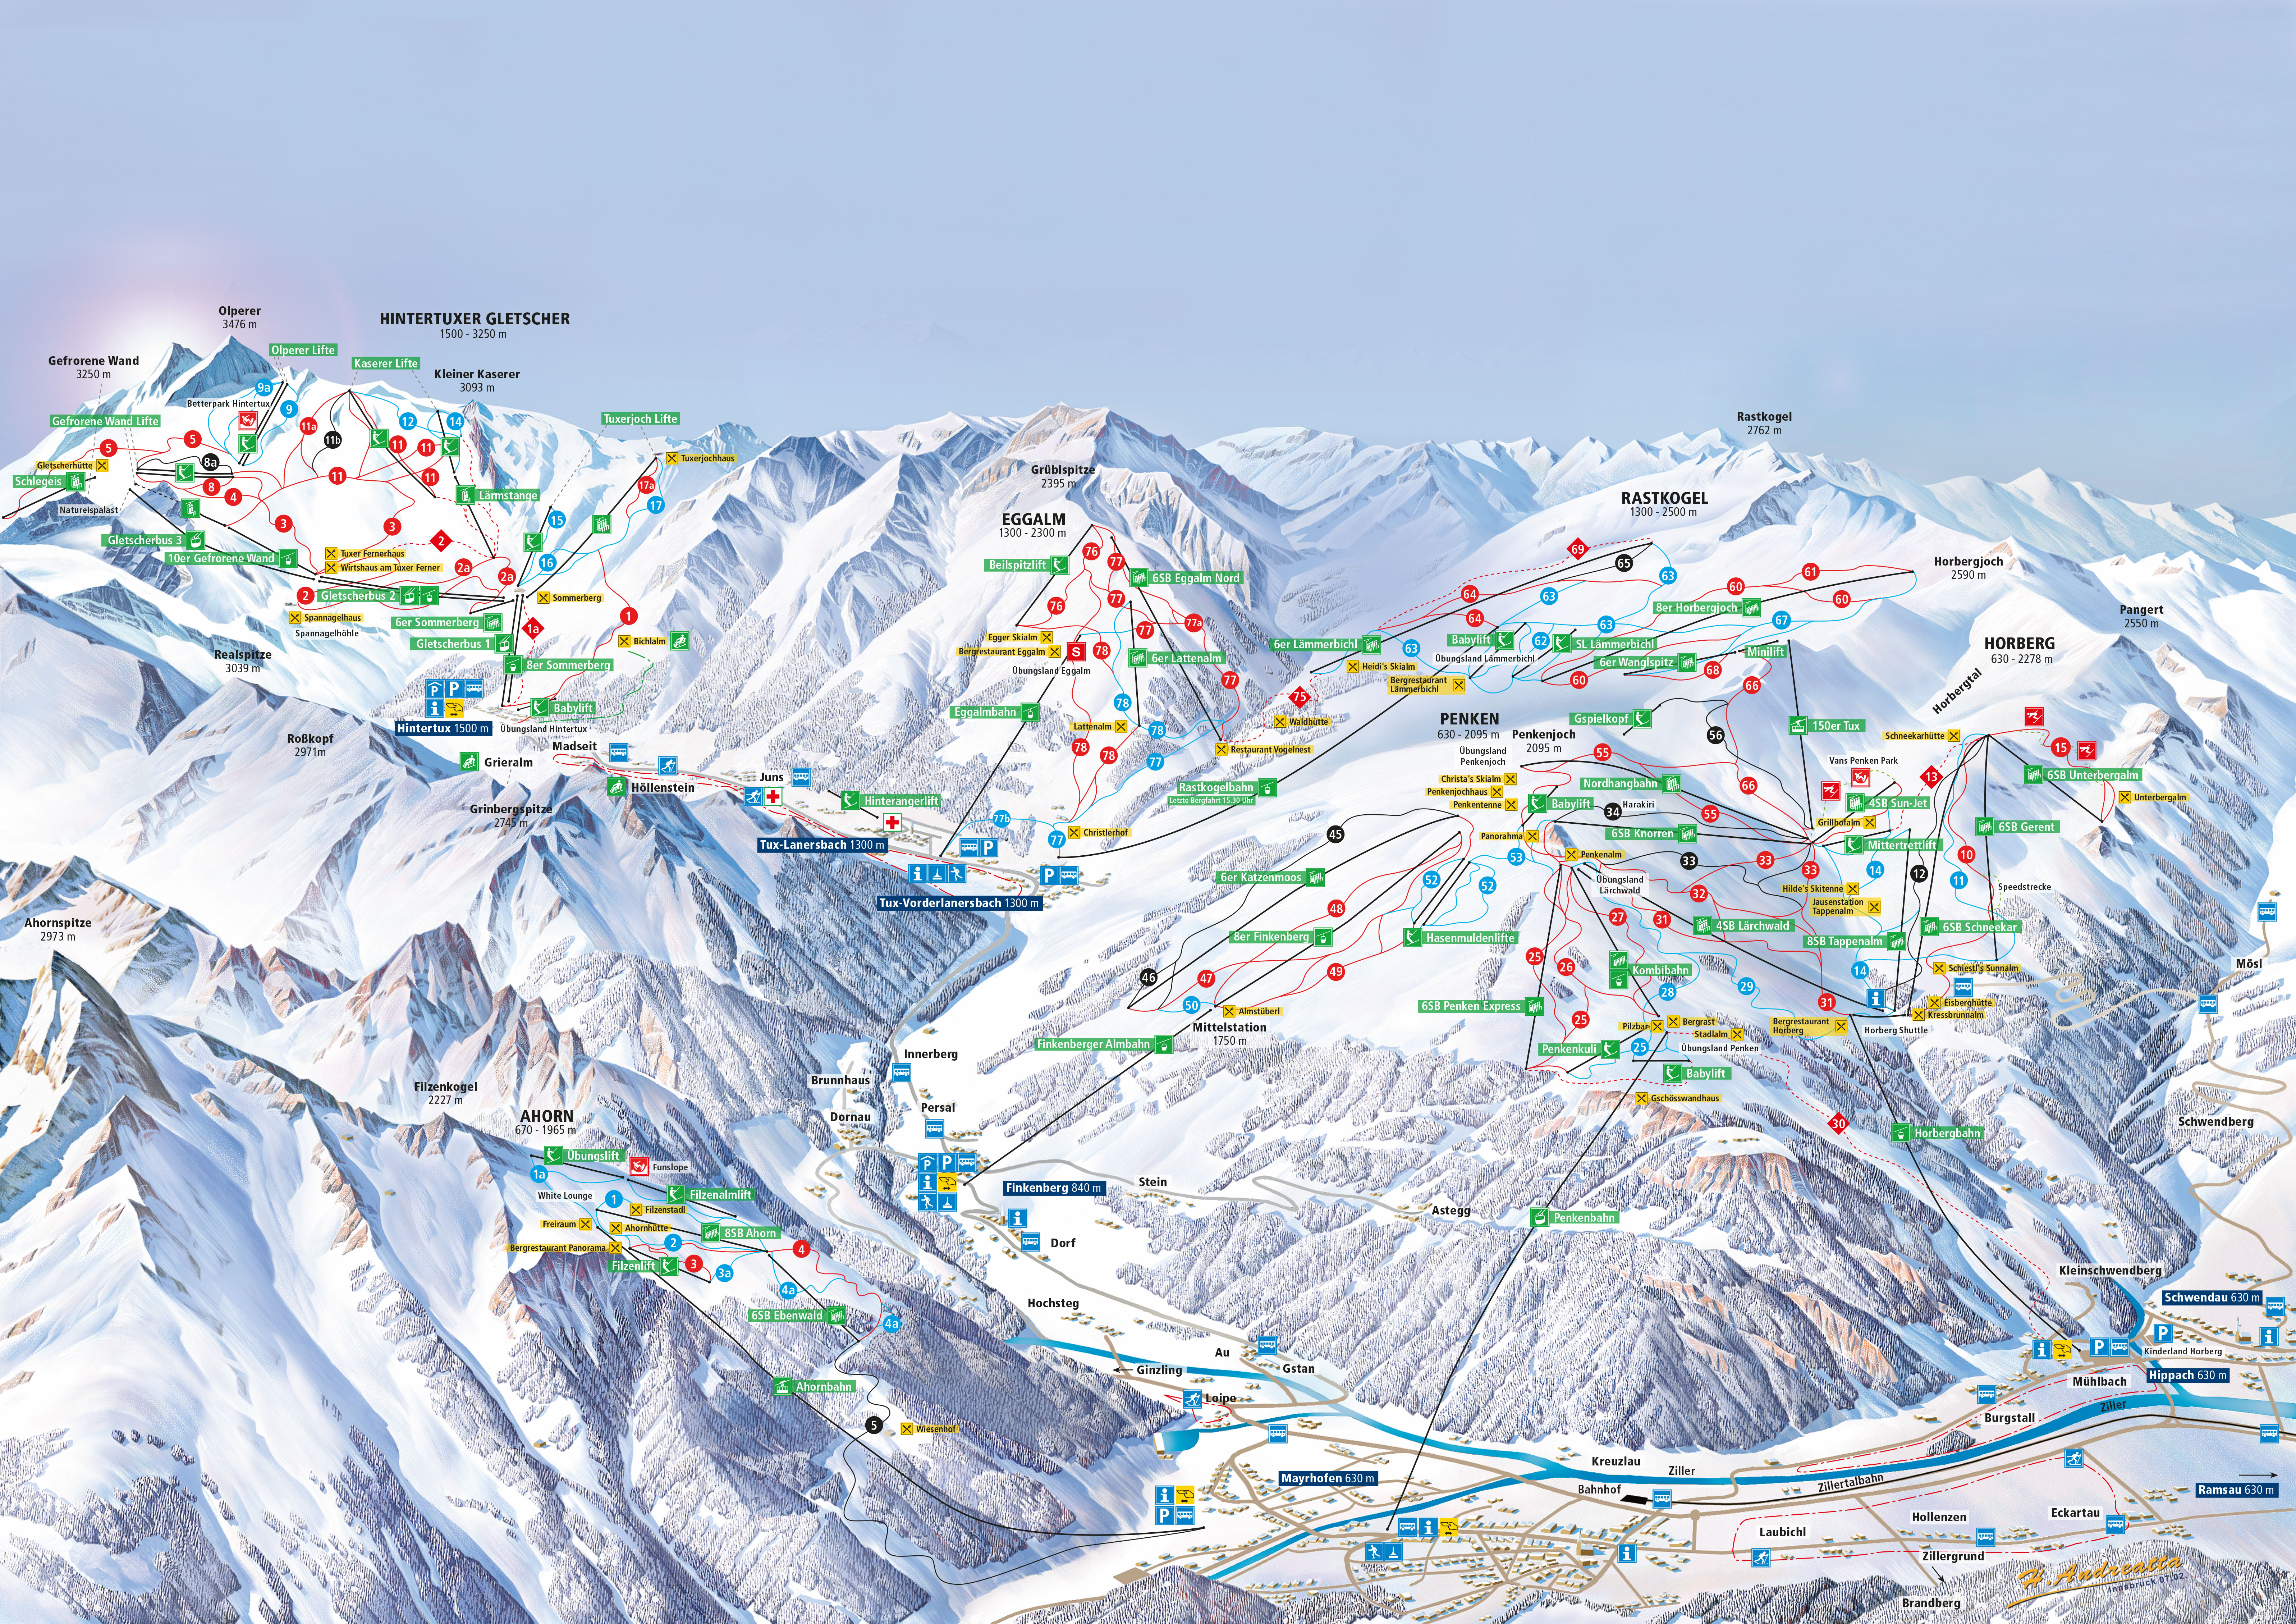 Zillertal 3000 hintertux skimap year published 2014 added by wbski added on 11th apr 2015 gumiabroncs Image collections